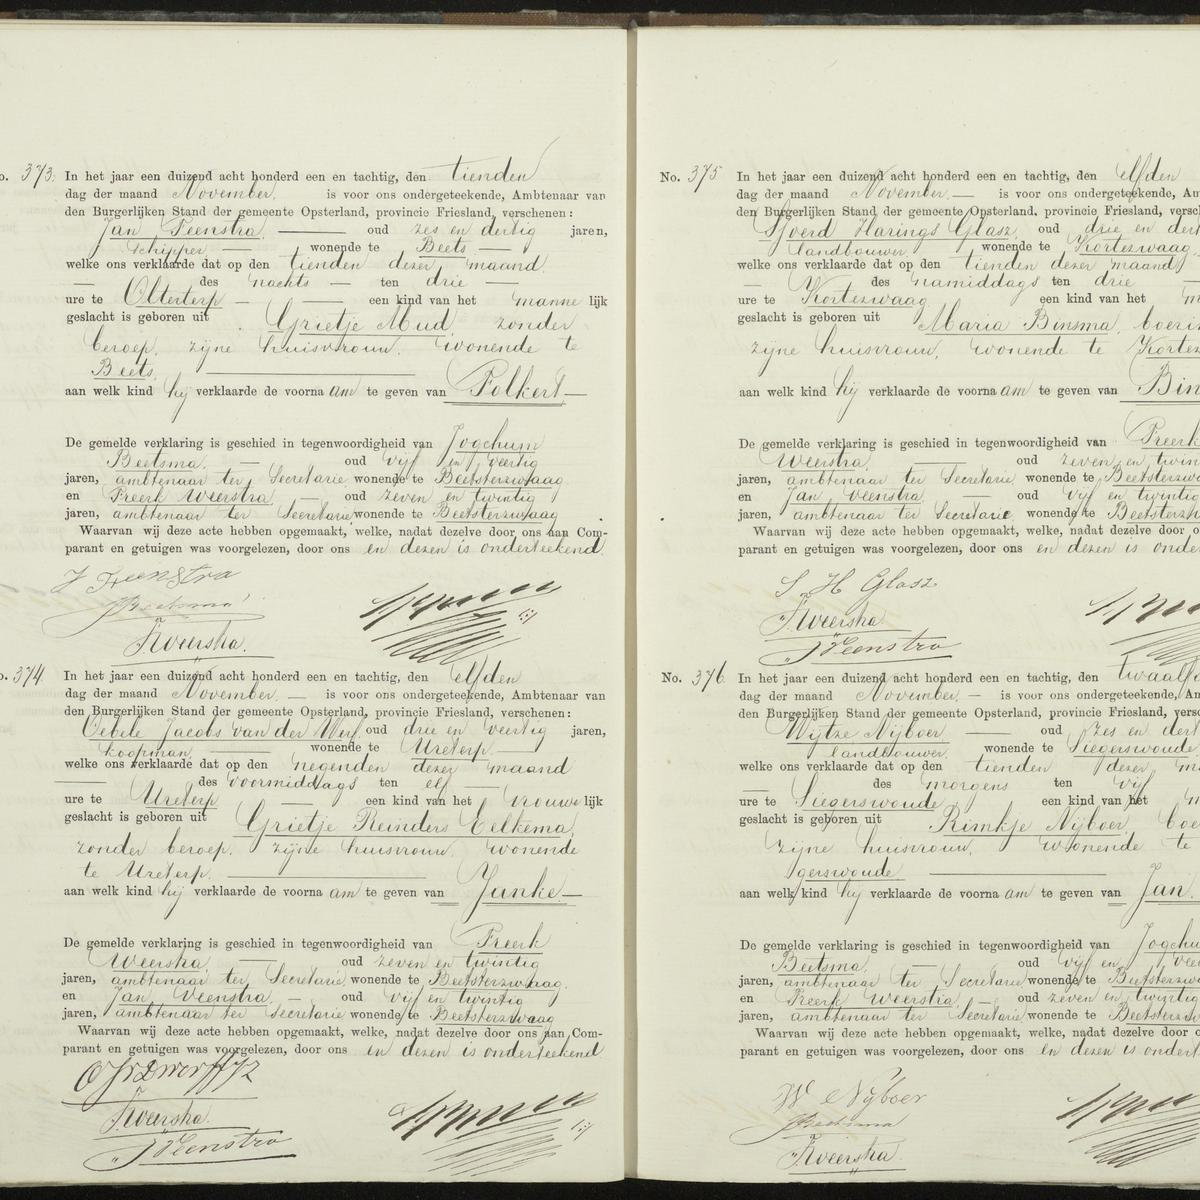 Civil registry of births, Opsterland, 1881, records 373-376